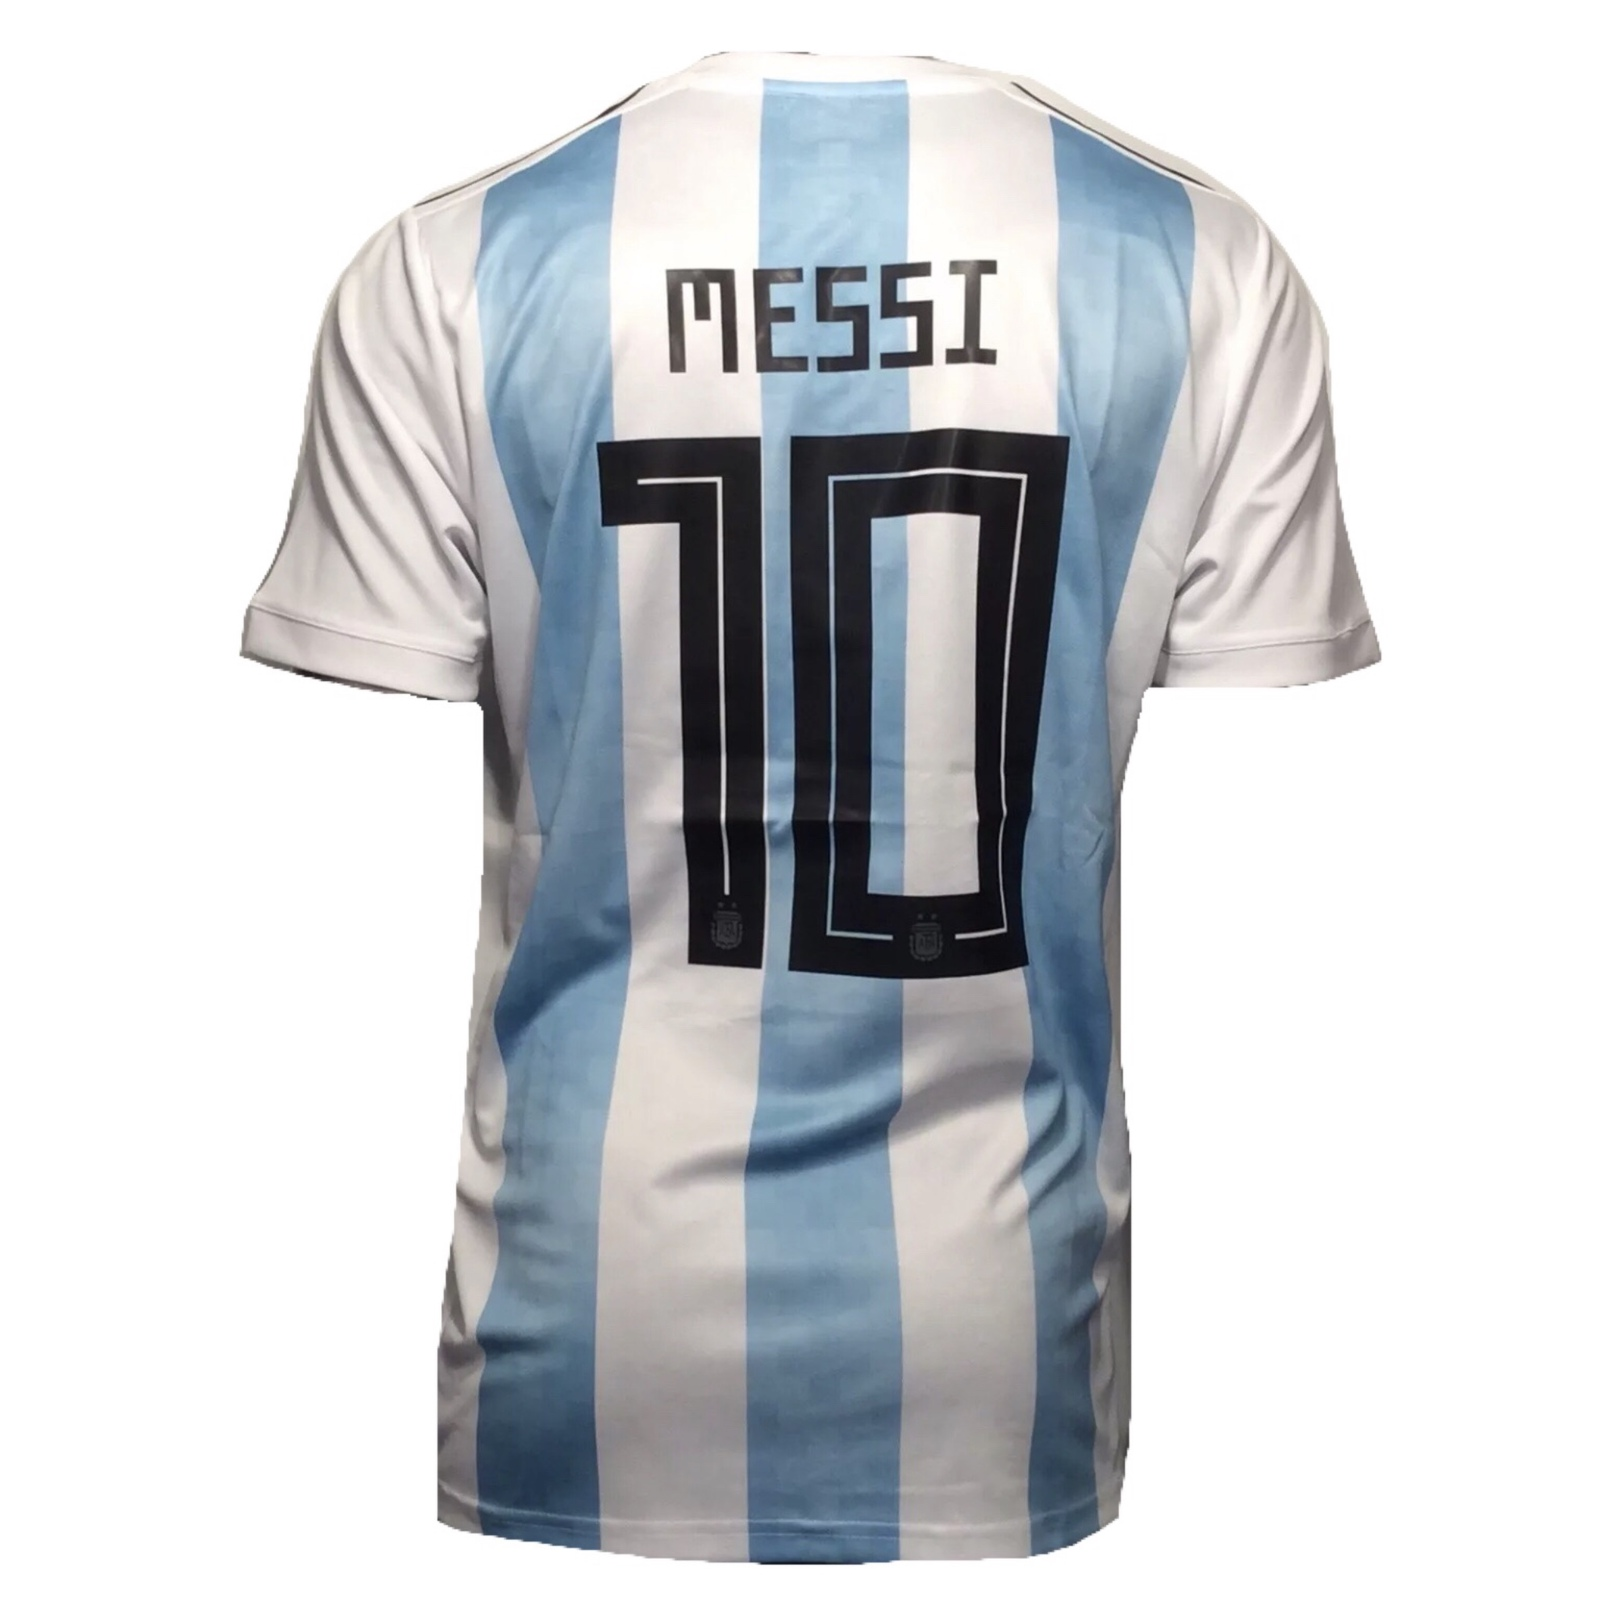 e0e90421af4 2018 World Cup Argentina National Team and 50 similar items. A8fc09ca 7565  4e9e bc8a 59d2381ed2cb